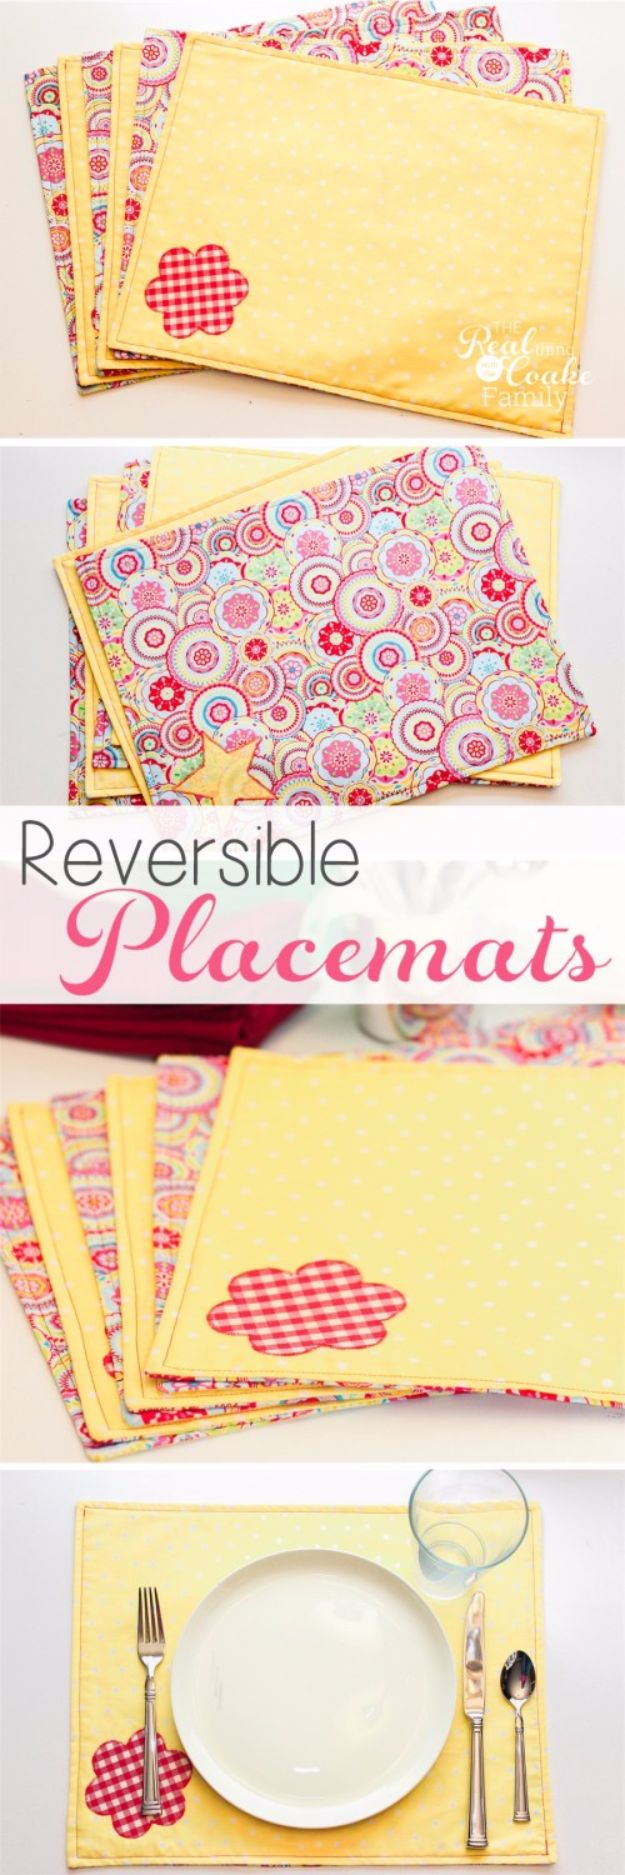 DIY Napkins and Placemats - Reversible Placemats - Easy Sewing Projects, Cute No Sew Ideas and Creative Ways To Make a Napkin or Placemat - Quick DIY Gift Ideas for Friends, Family and Awesome Home Decor - Cheap Do It Yourself Kitchen Decor - Simple Wedding Gifts You Can Make On A Budget http://diyjoy.com/diy-napkins-placemats